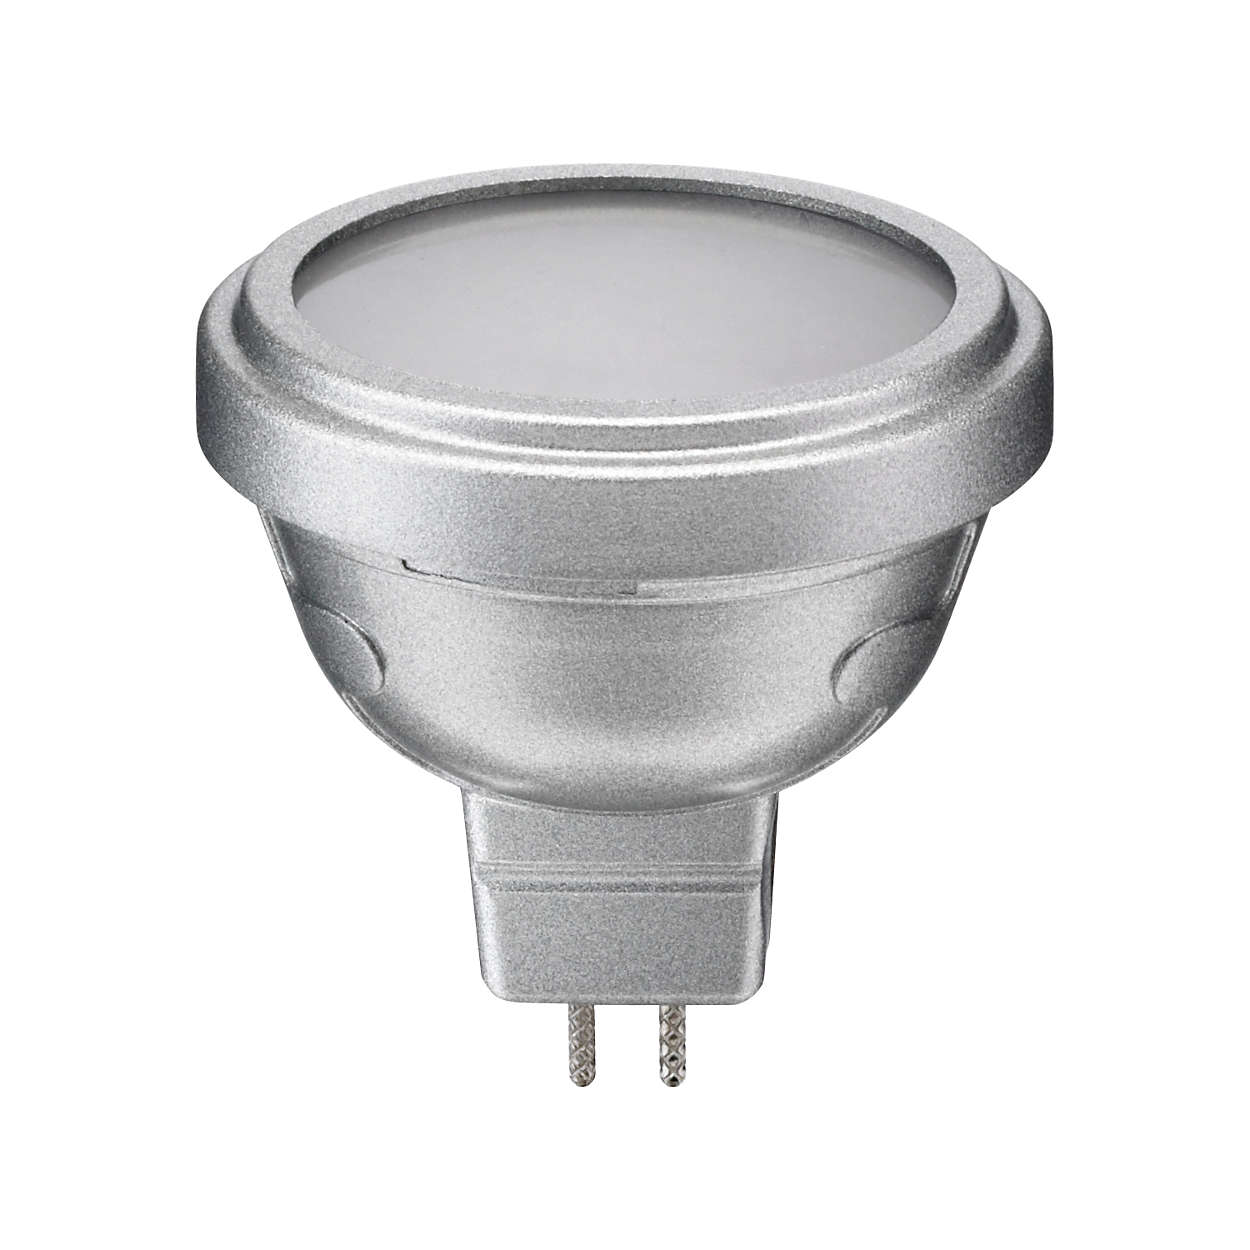 iW MR gen3 – intelligent MR16 LED lamp with high-quality white light